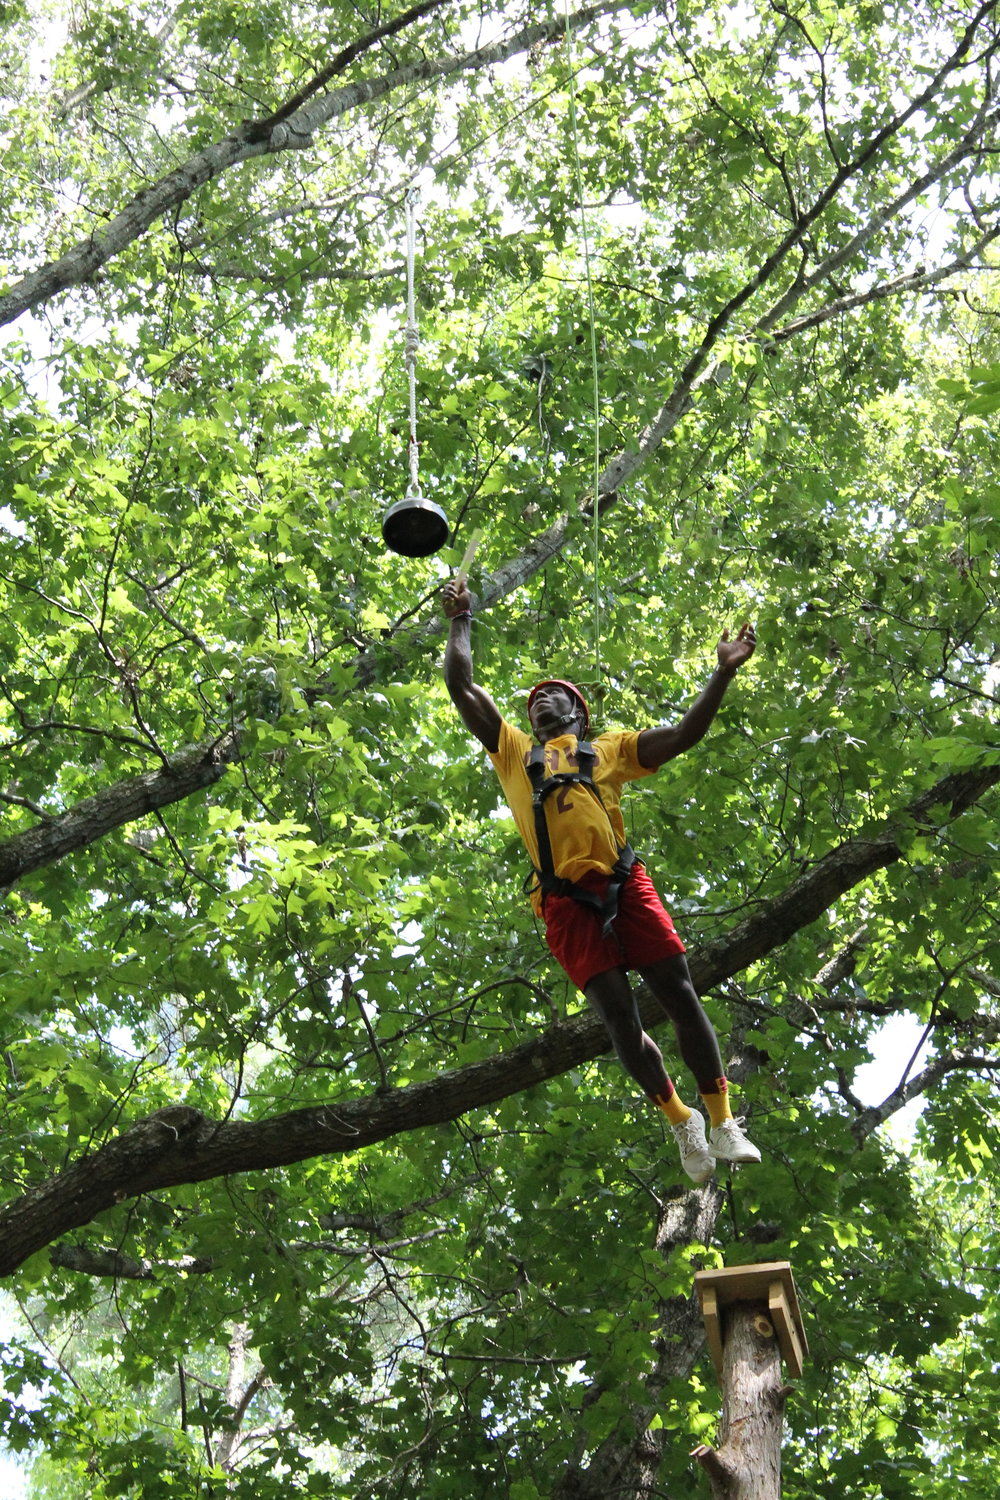 The Tree Hugger 'Leap of Faith' is a 32ft pole you must climb and